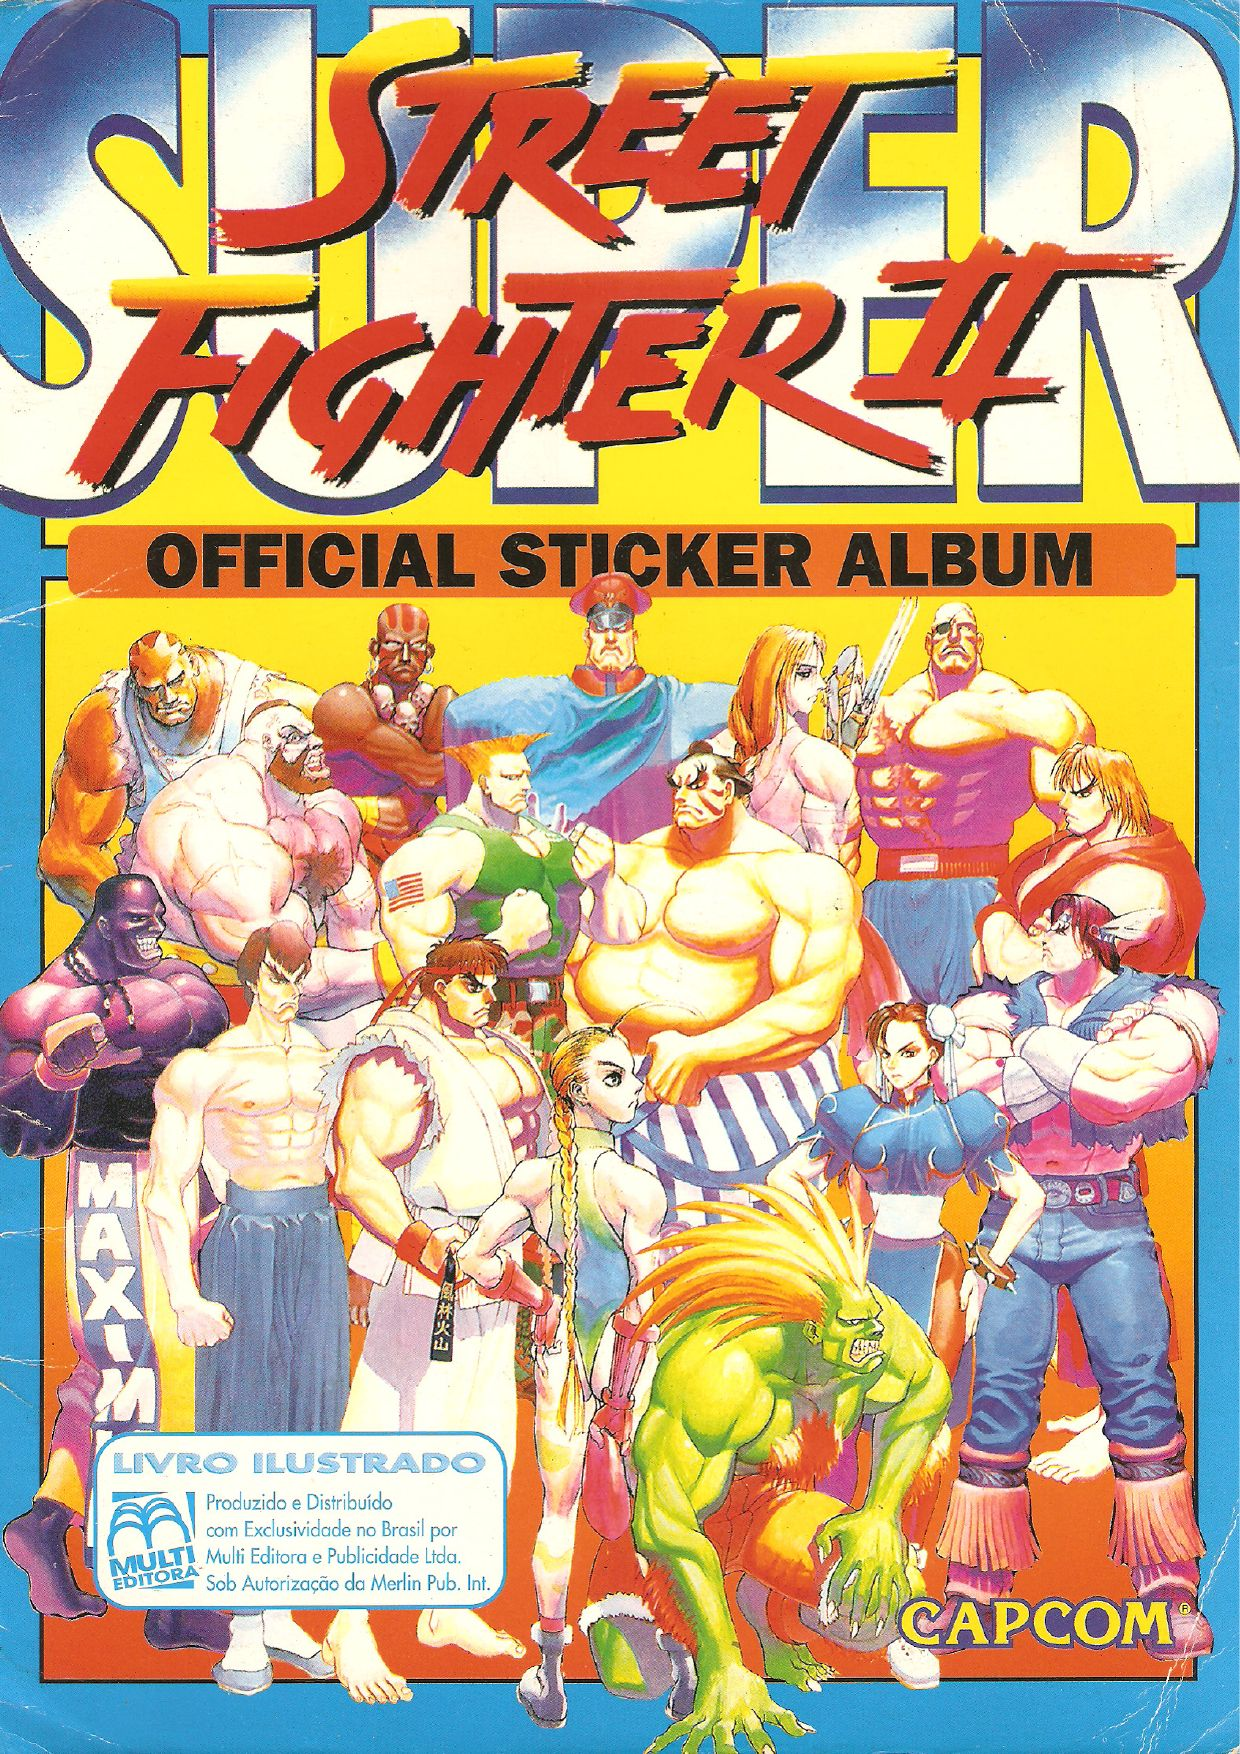 Super street fighter ii official sticker album by claudio prandoni issuu